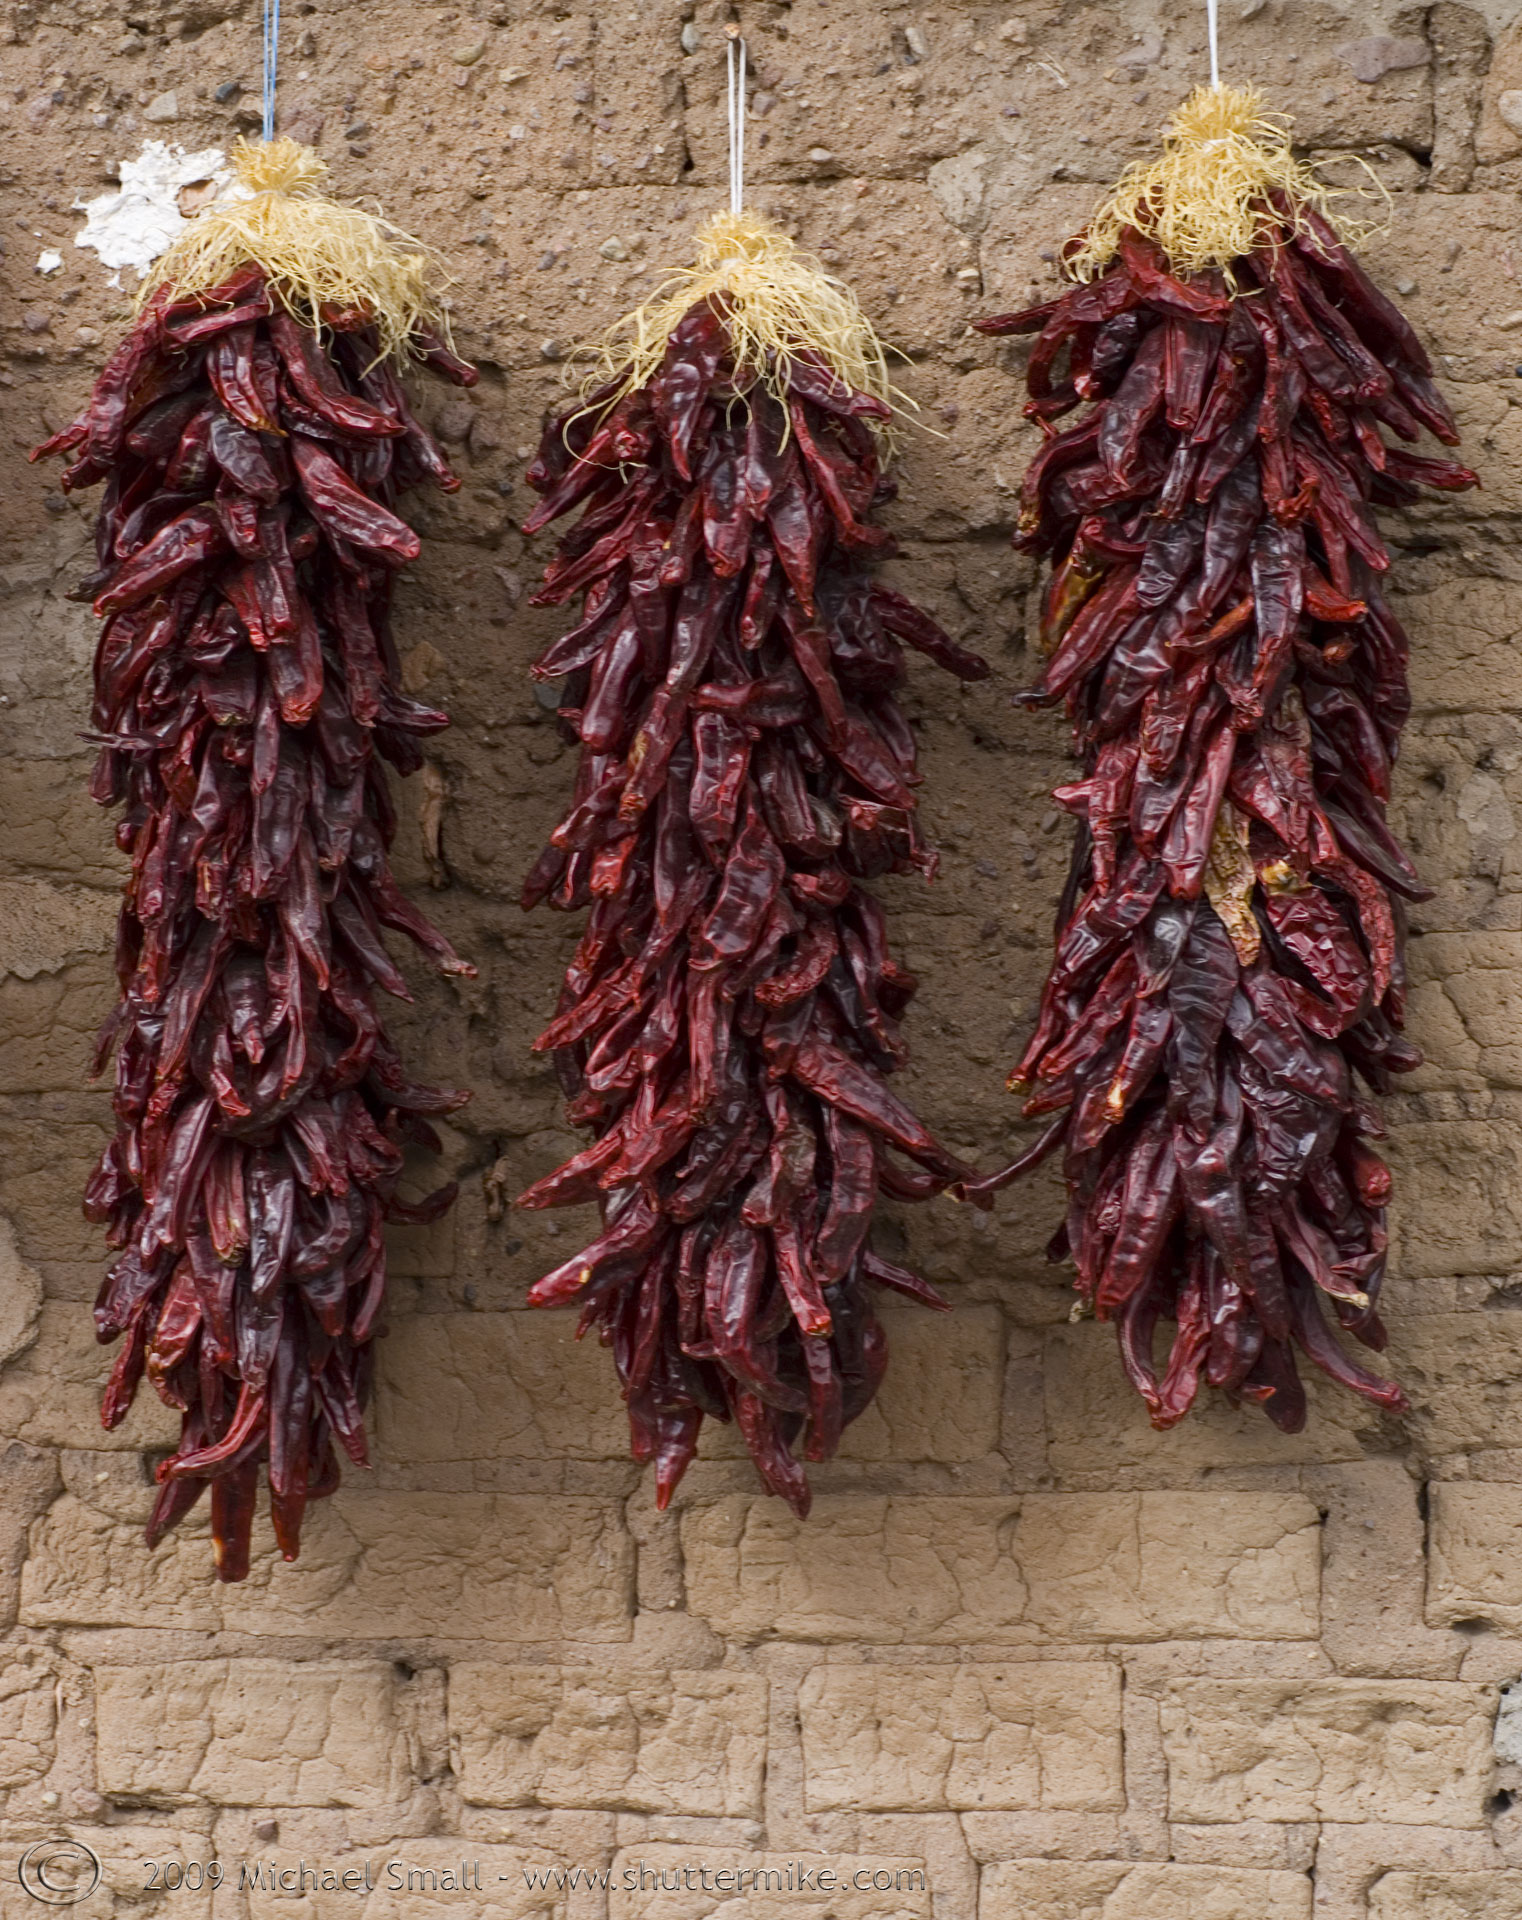 Leave some dried chilli out to keep lizards away http://www ...